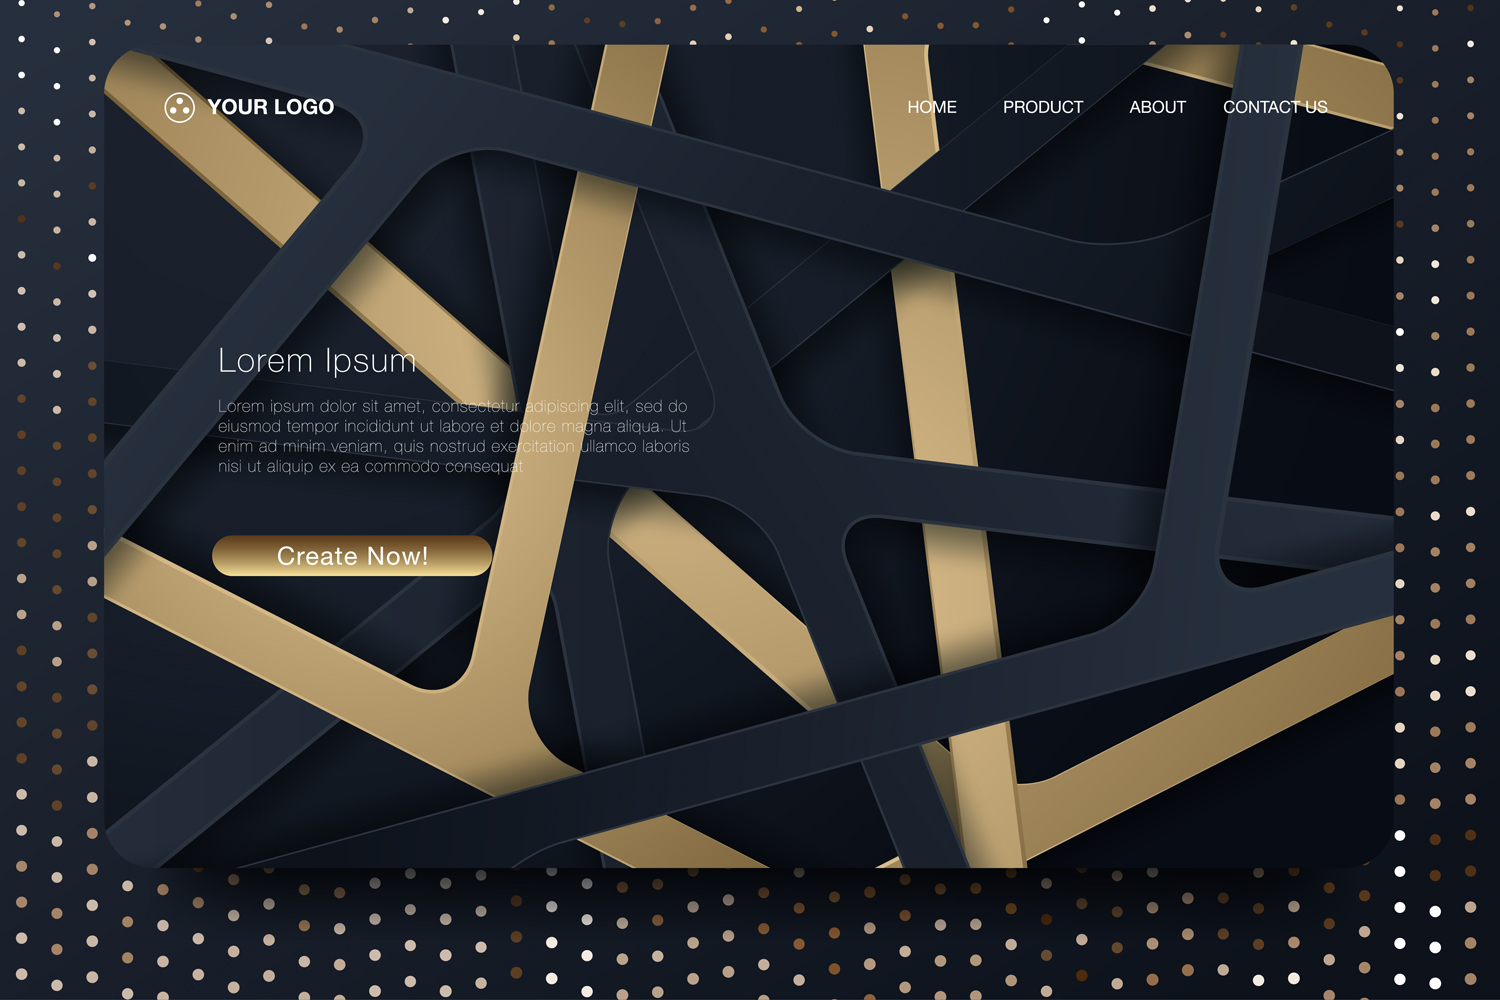 20 - Abstract background design. Landing page template example image 4